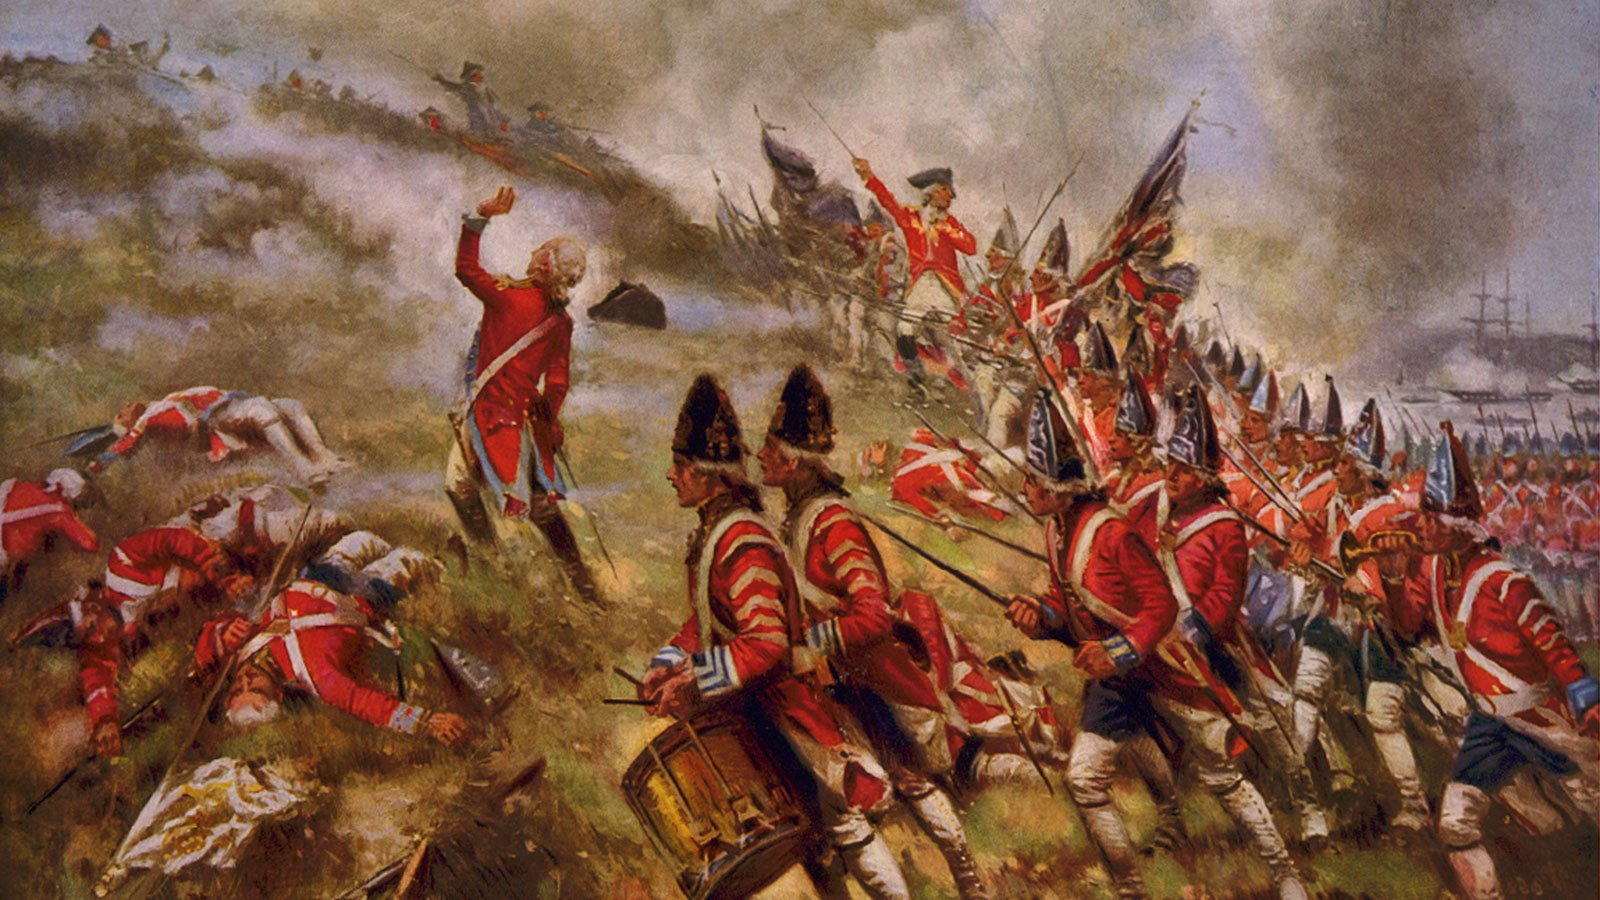 Battle of Bunker Hill, painted by E. Percy Moran